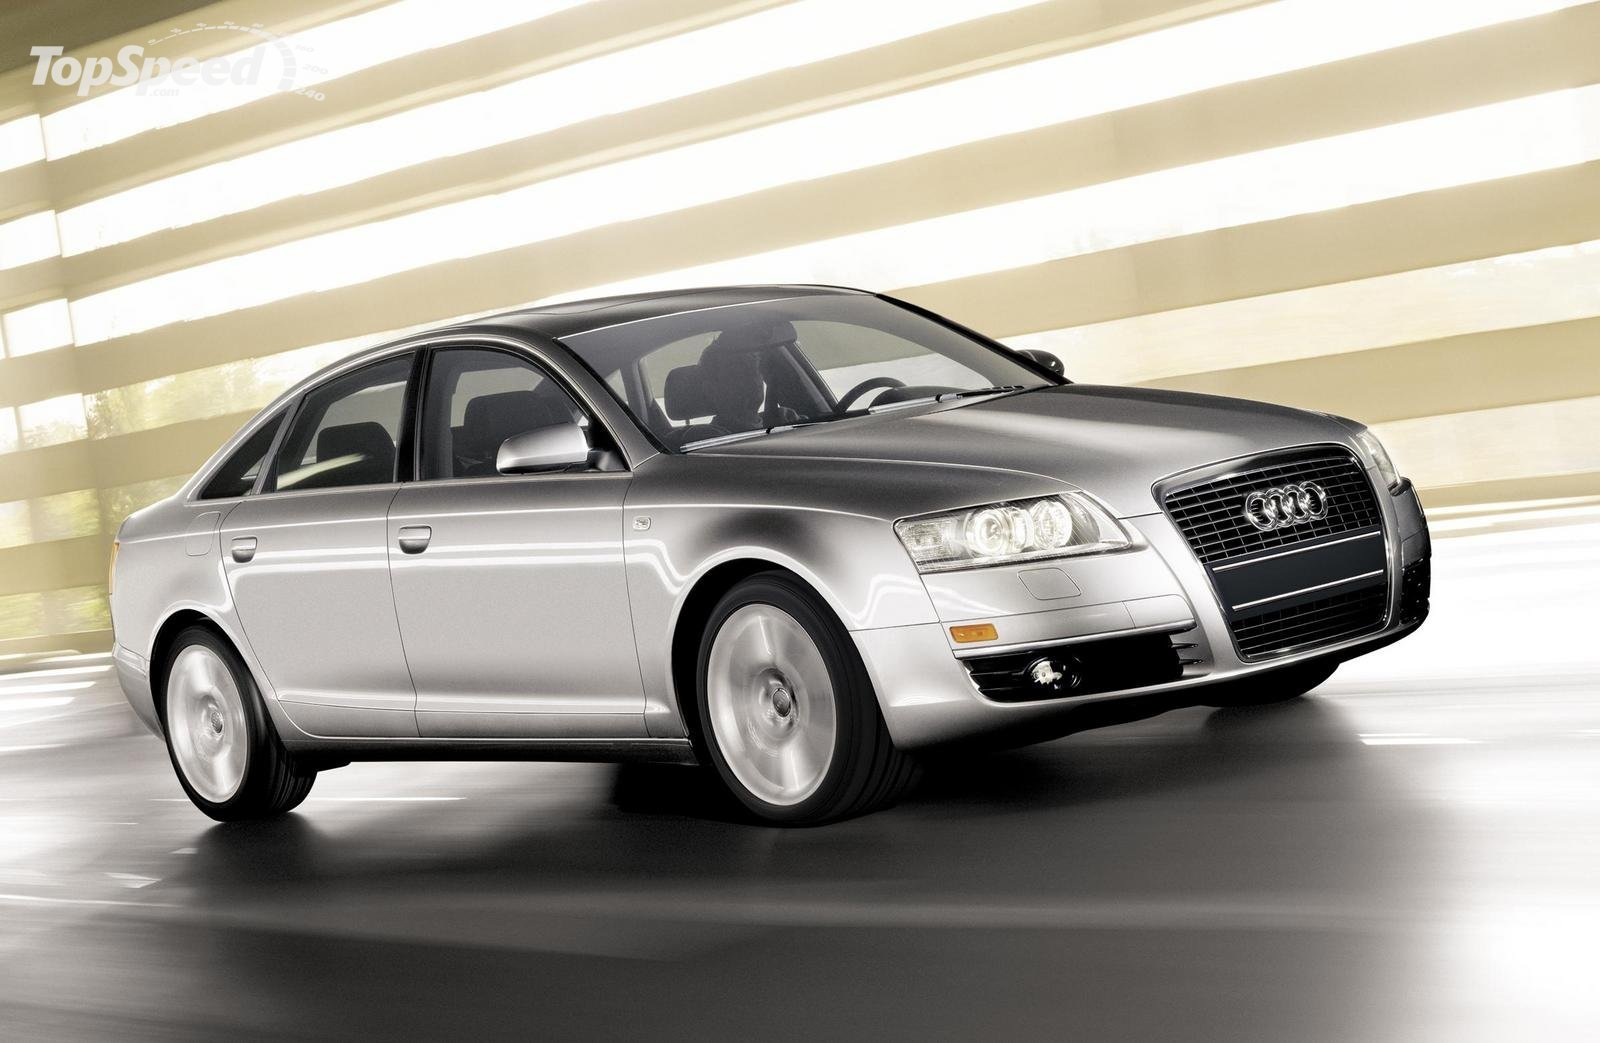 2007 audi a6 sedan picture 146485 car review top speed. Black Bedroom Furniture Sets. Home Design Ideas